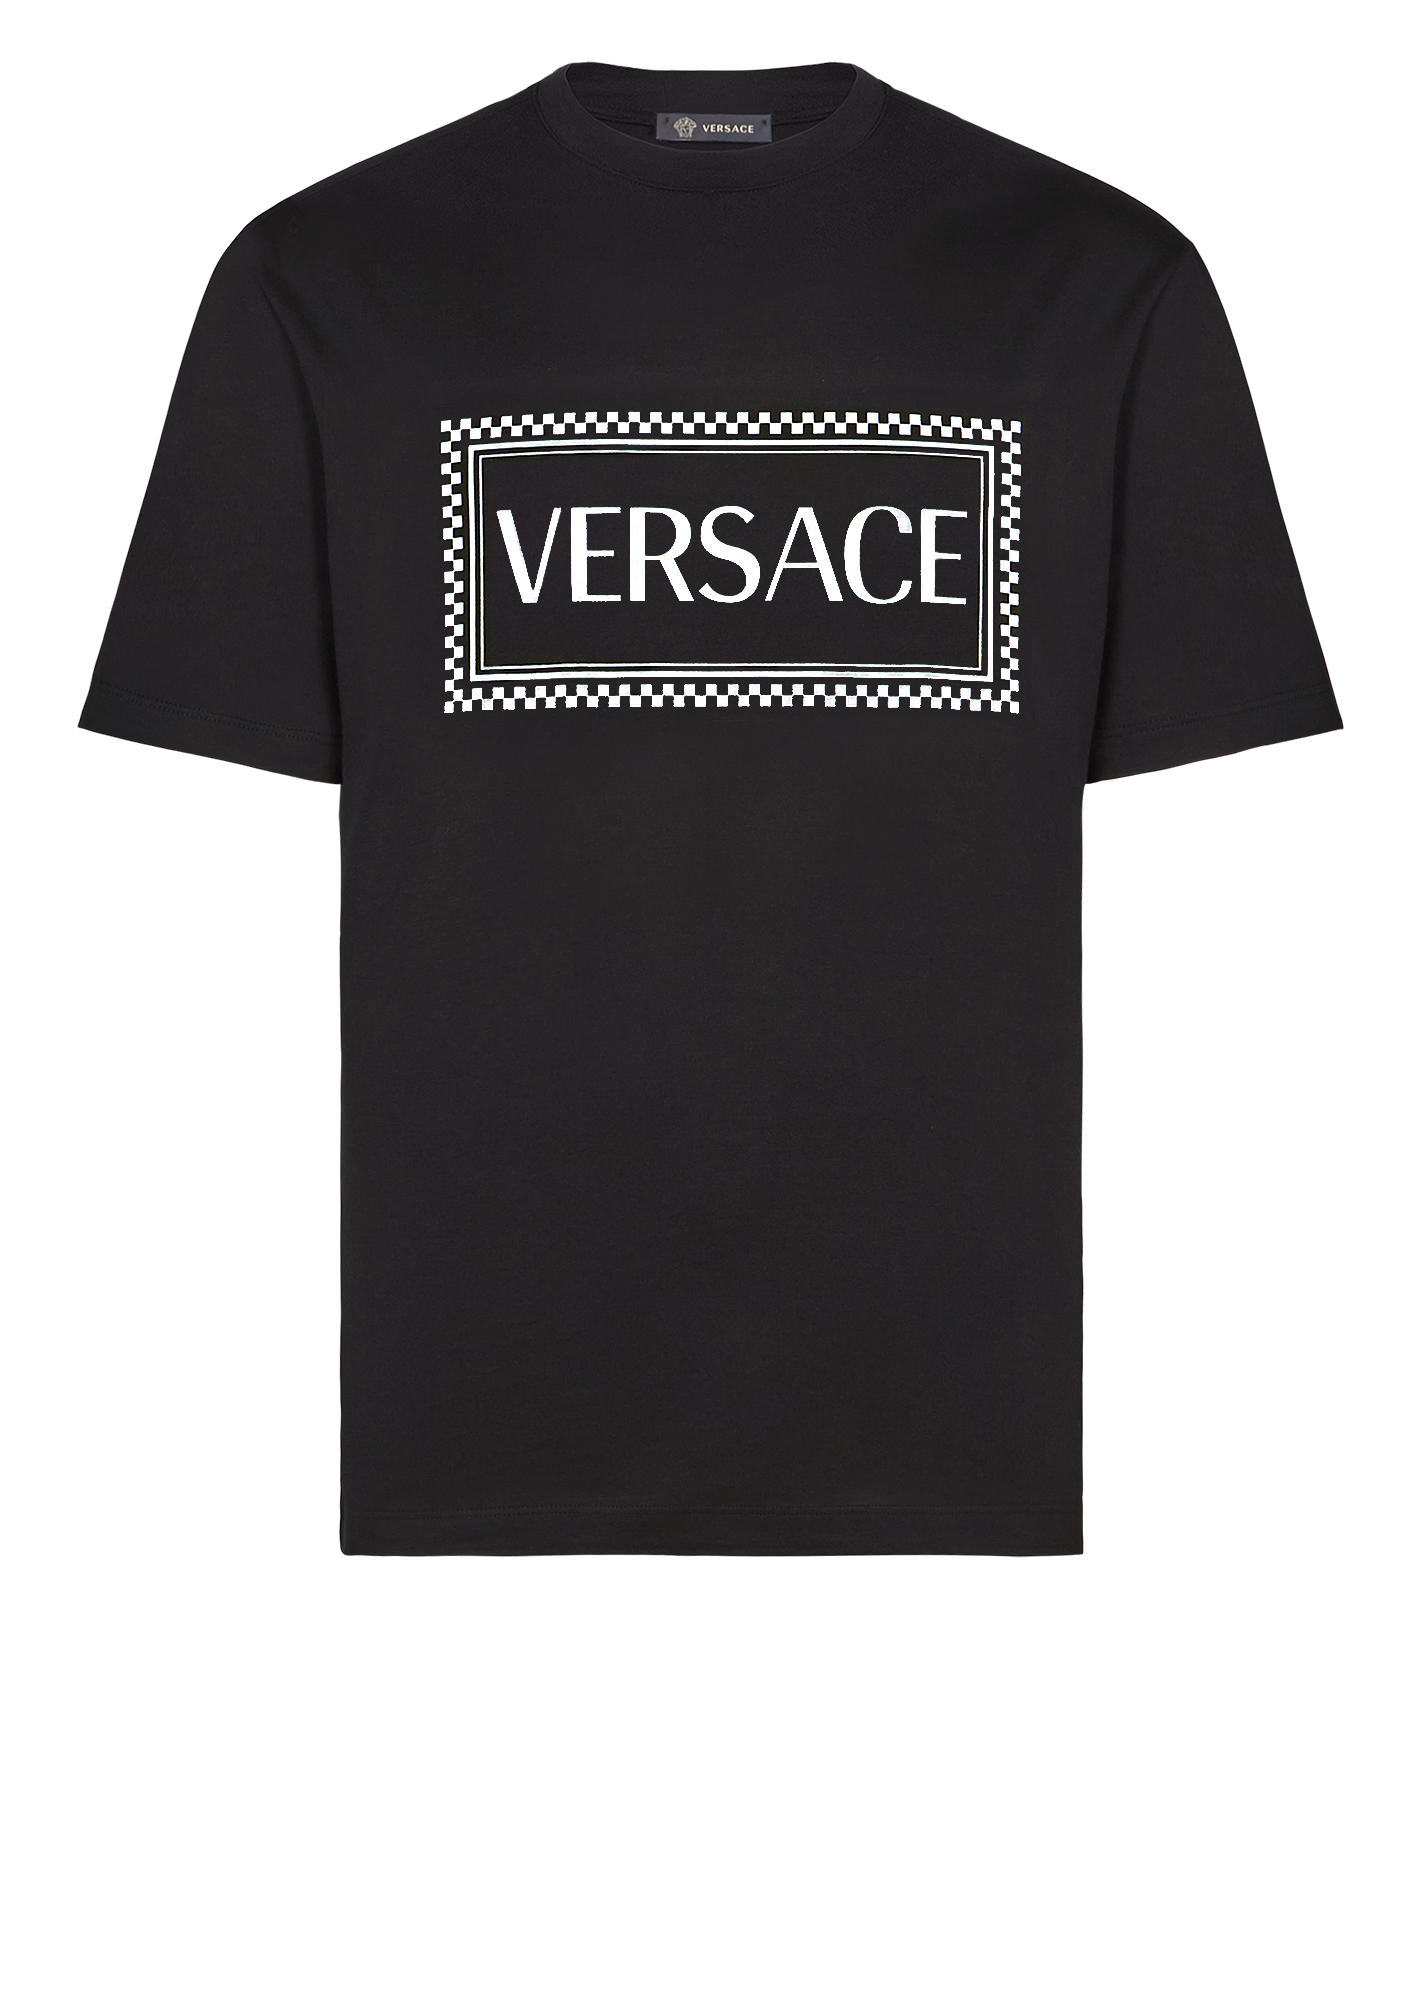 Versace polos shirts for. Model vector t shirt png transparent